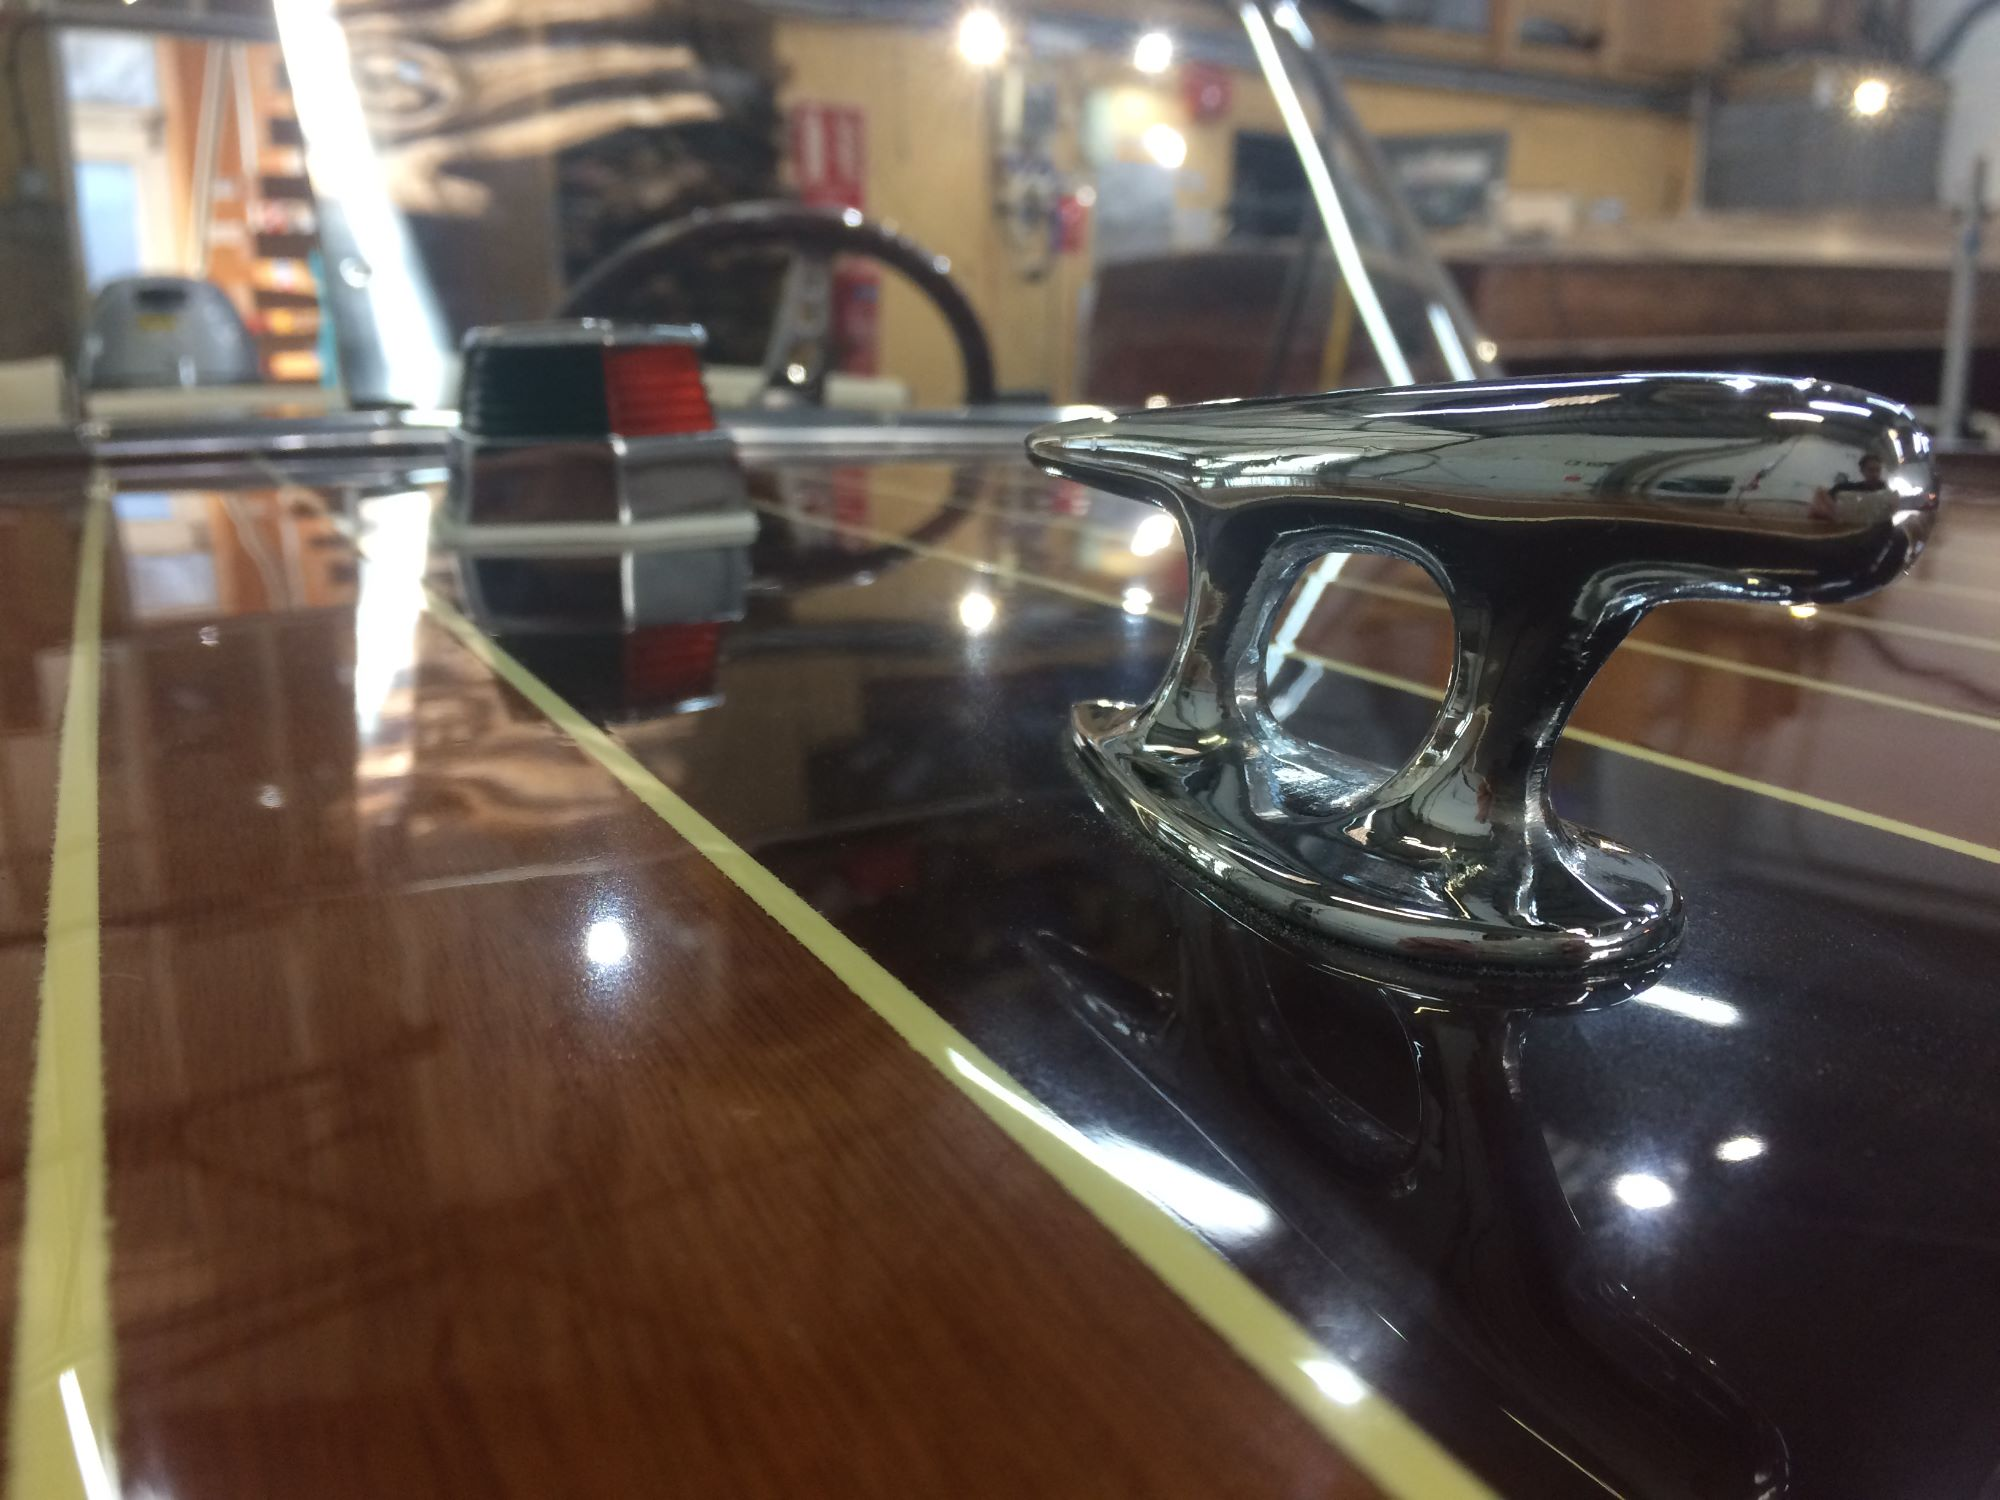 new chrome fittings on this broom viking speedboat